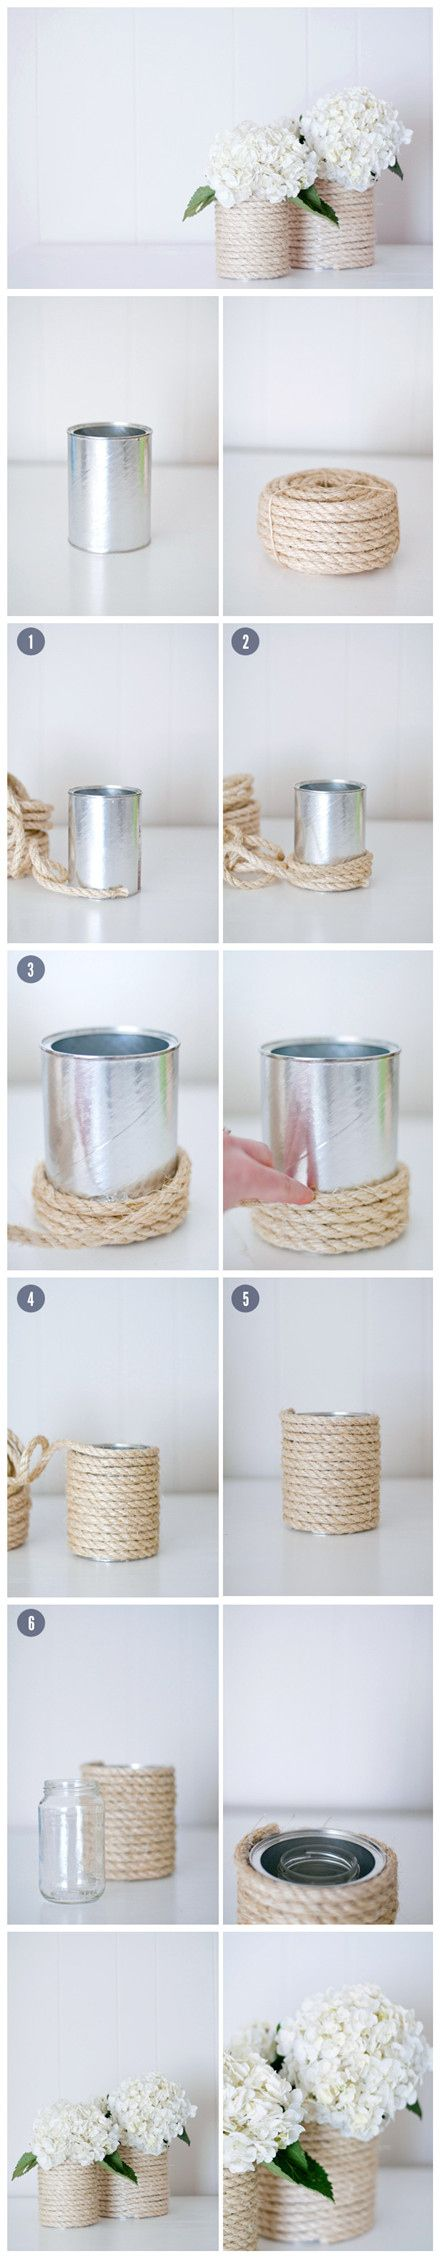 DIY rope vase - so elegant and simple! What a great gift idea!: